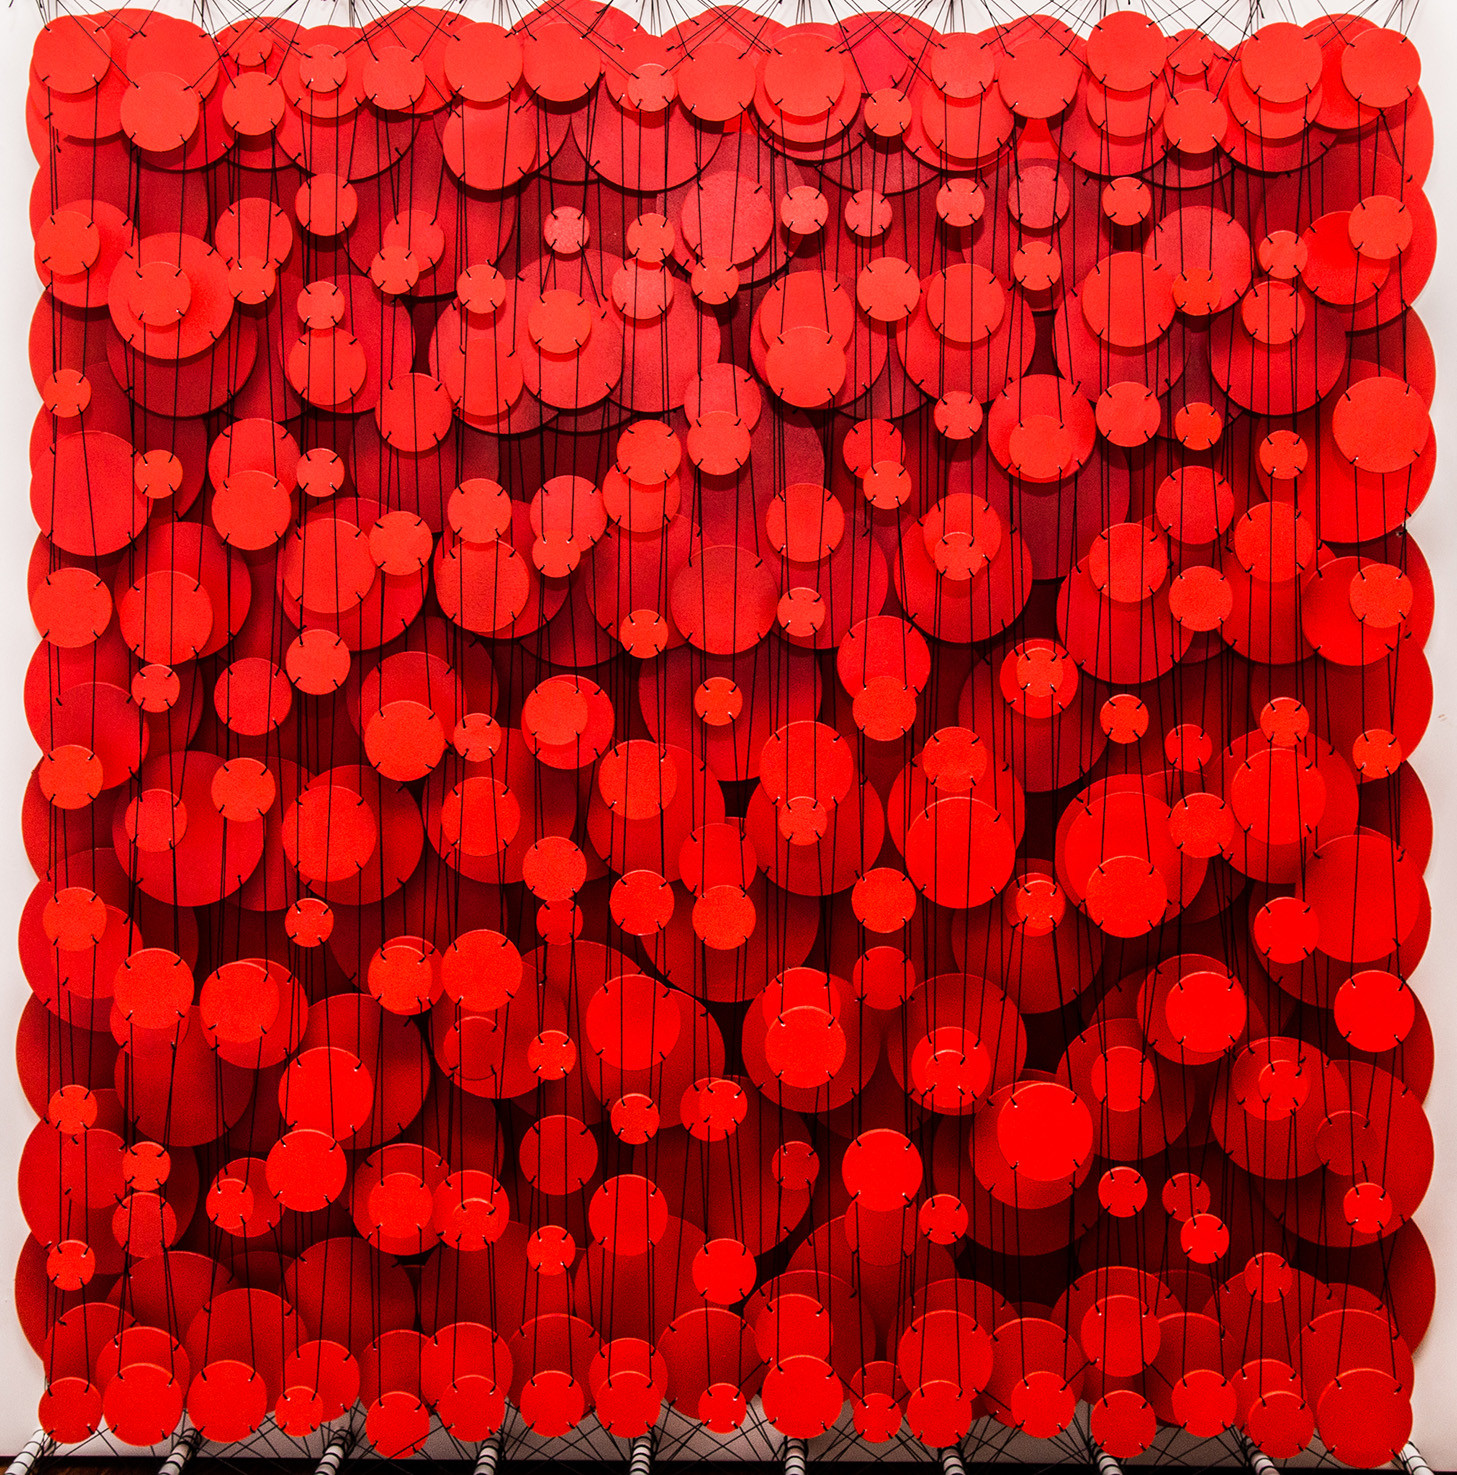 Cecilia Glazman Red popps II 2017 Papel y madera pintado a mano e hilos (Hand painted paper and wood, thread) 100 x 100 cm.